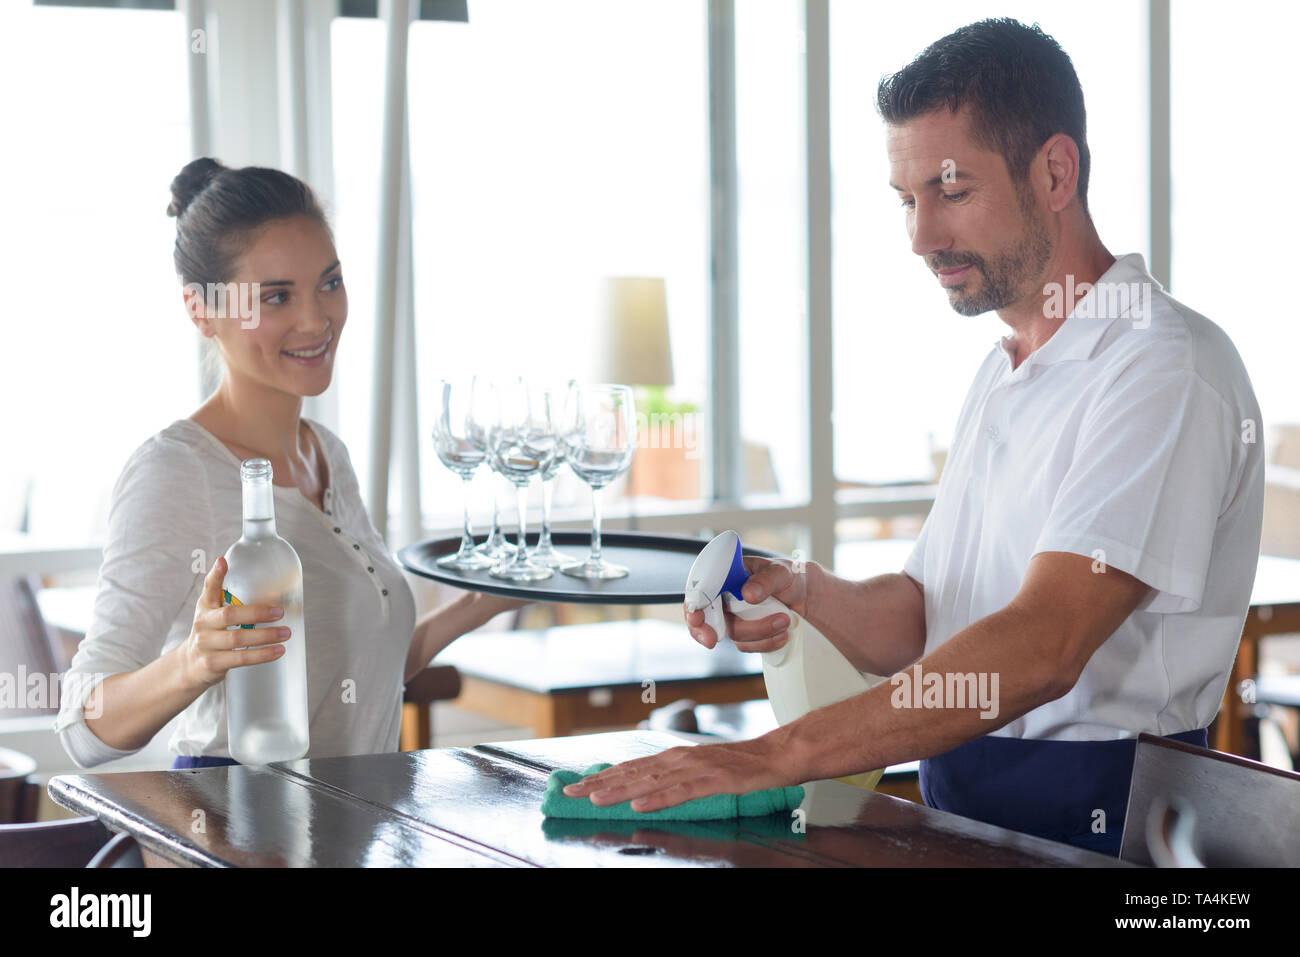 man and woman working on bar - Stock Image